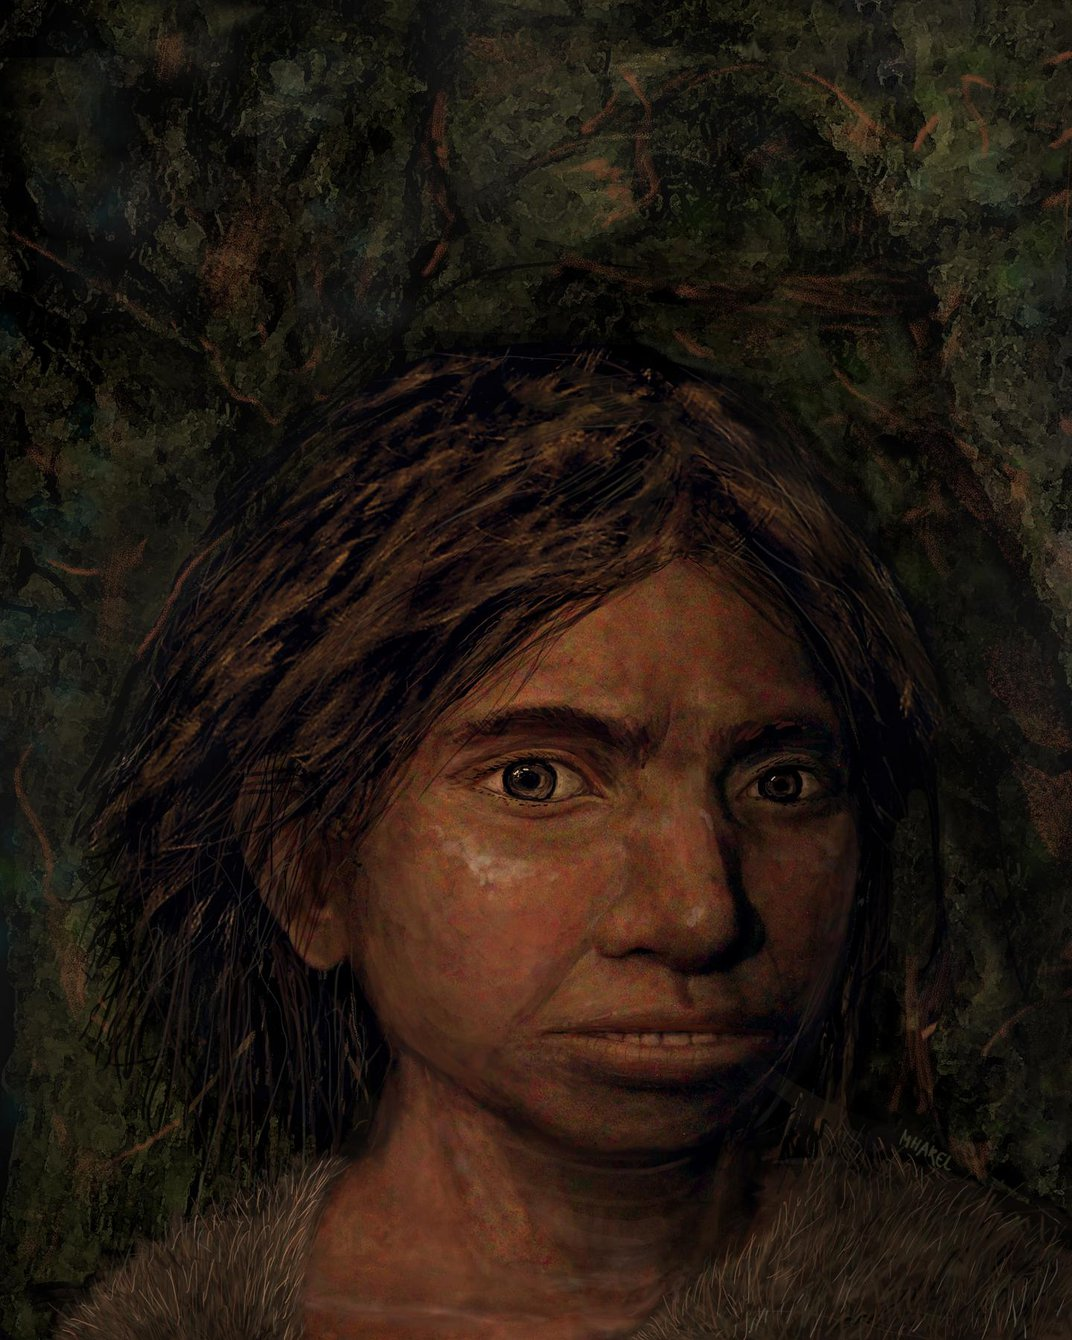 Scientists Recreate the Face of a Denisovan Using DNA